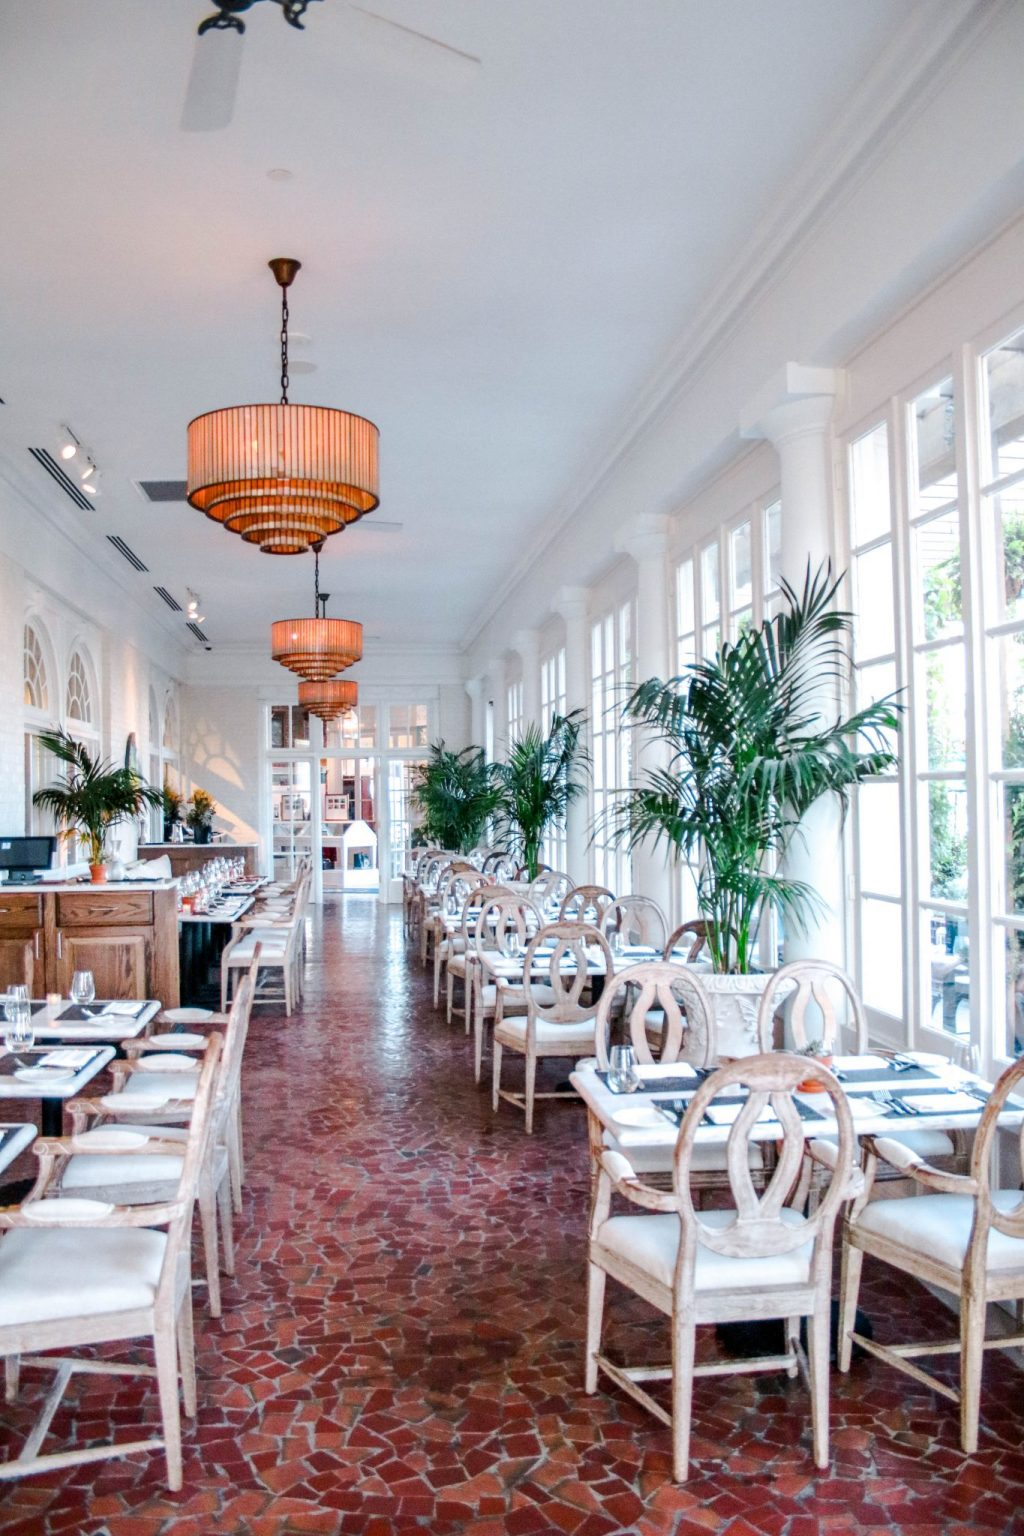 Becca Restaurant - The Cavalier Hotel